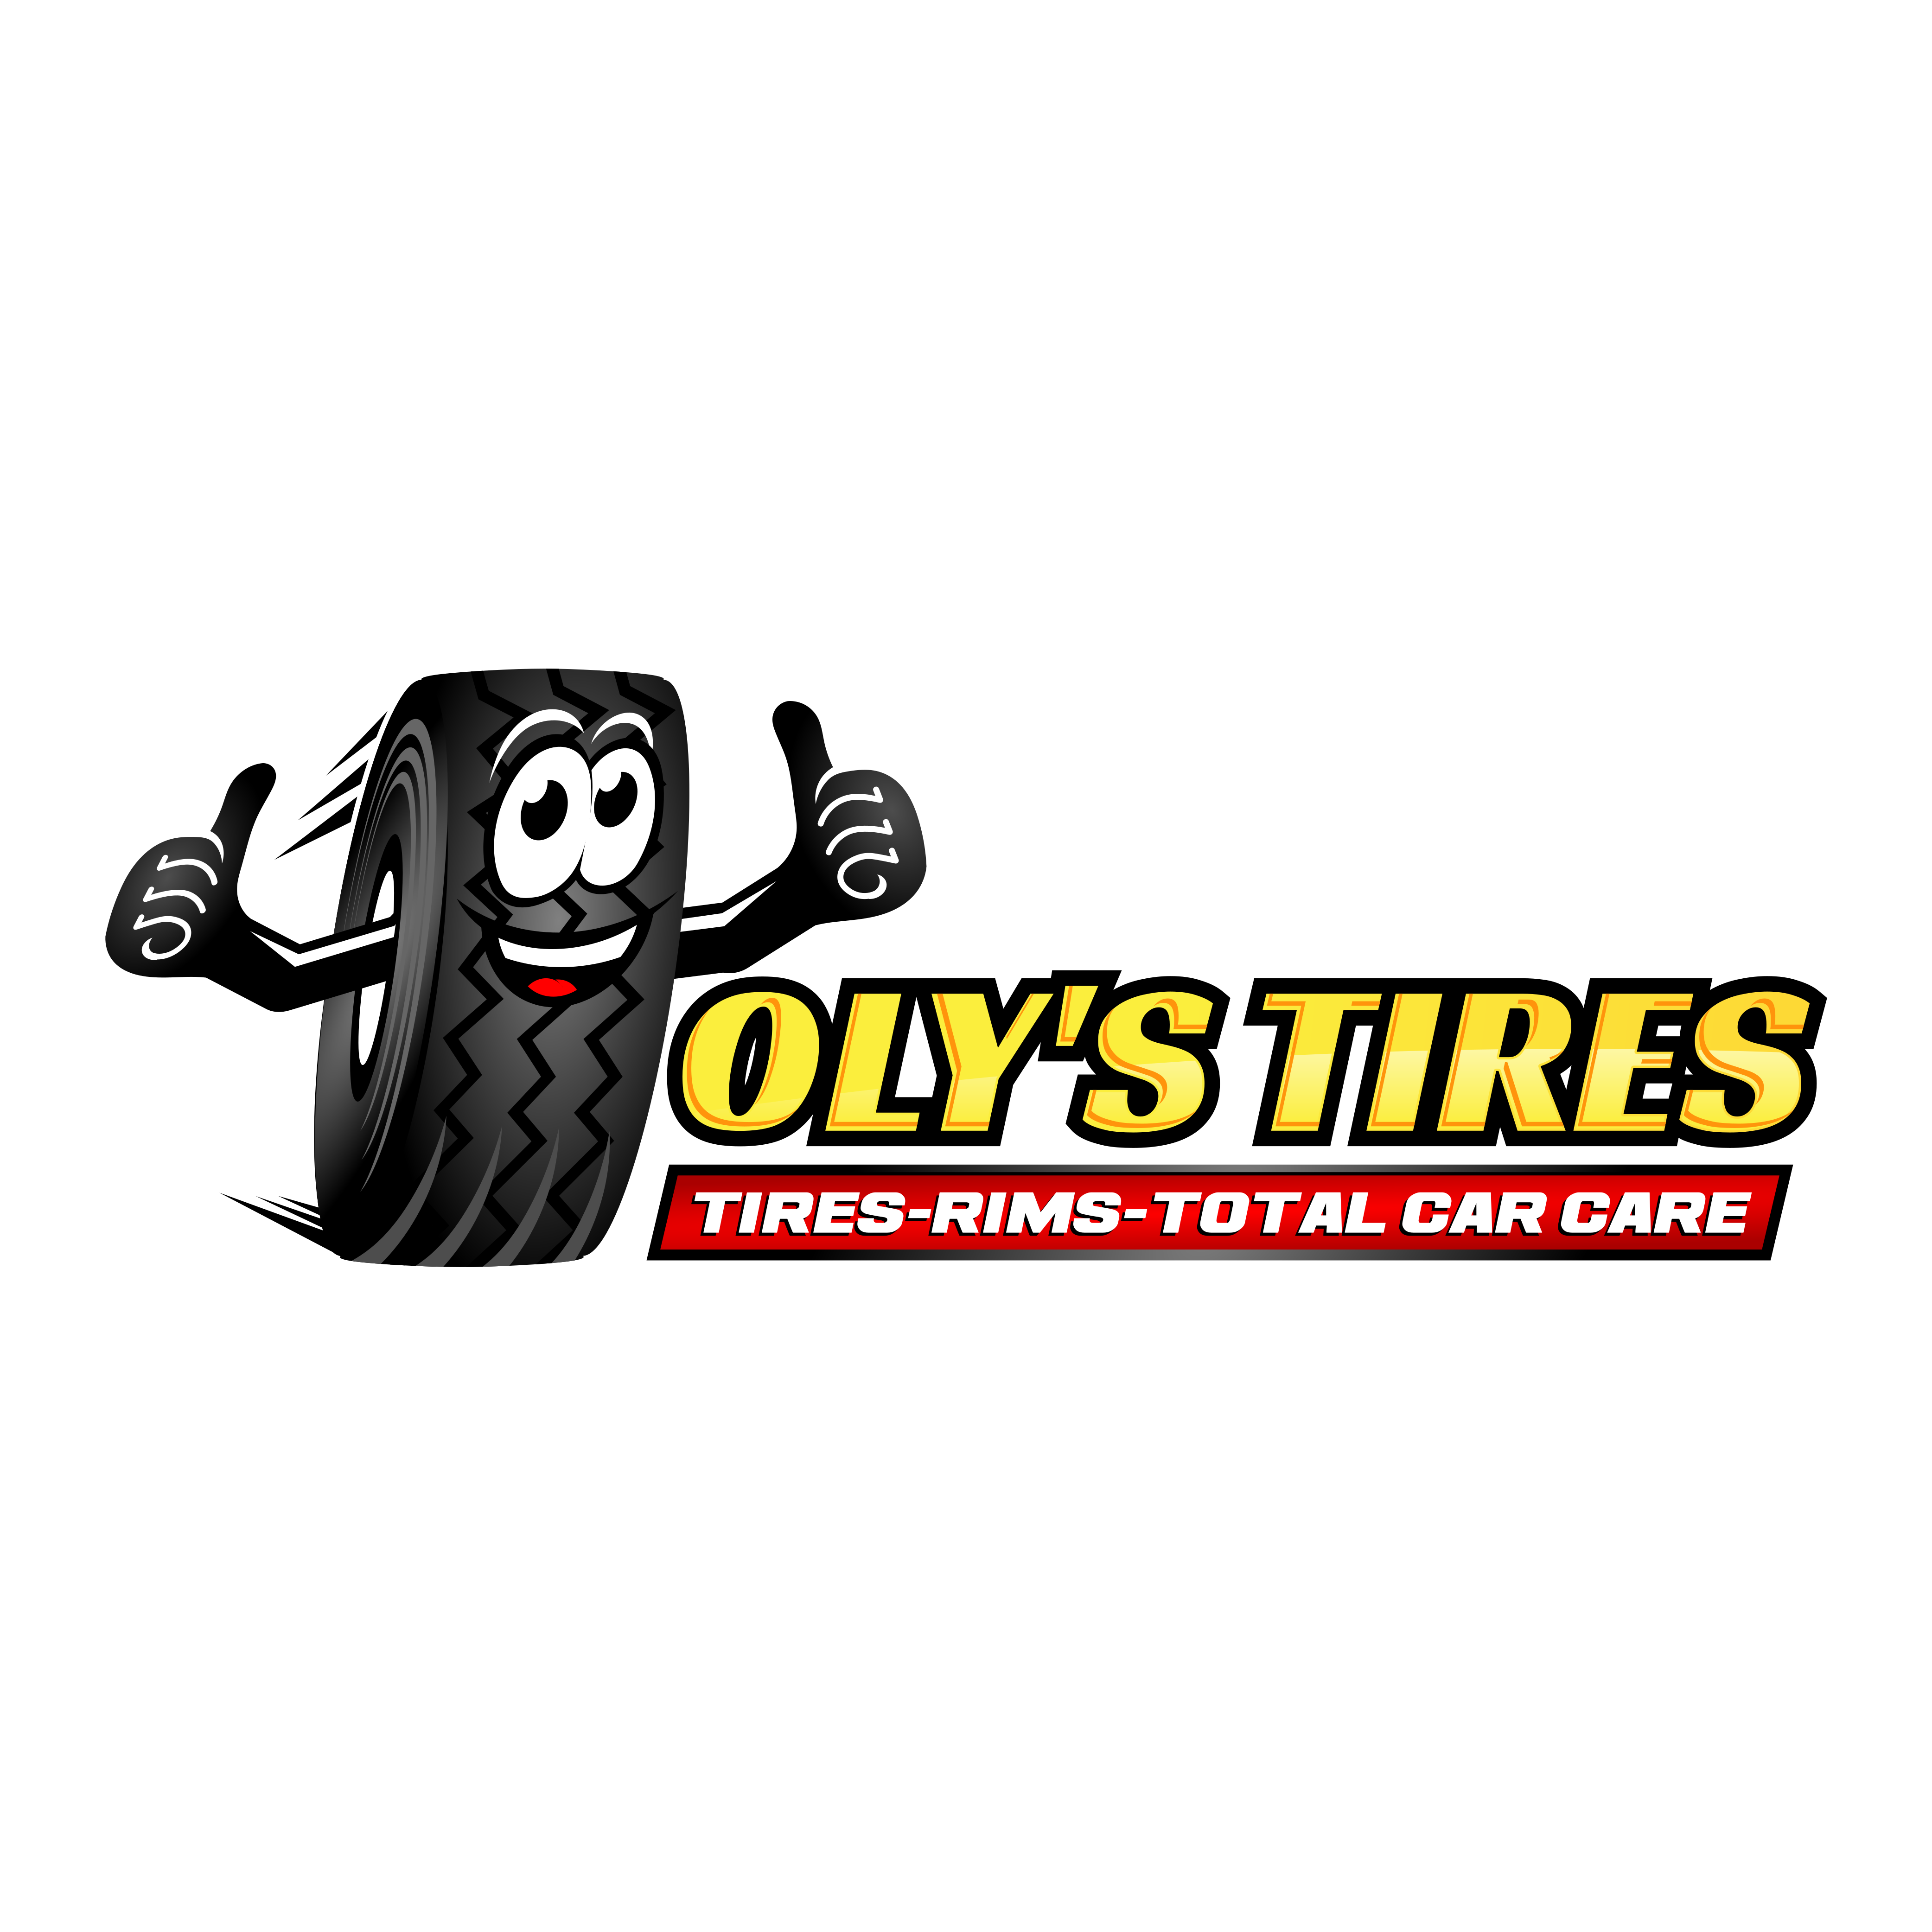 OLY'S TIRES image 1